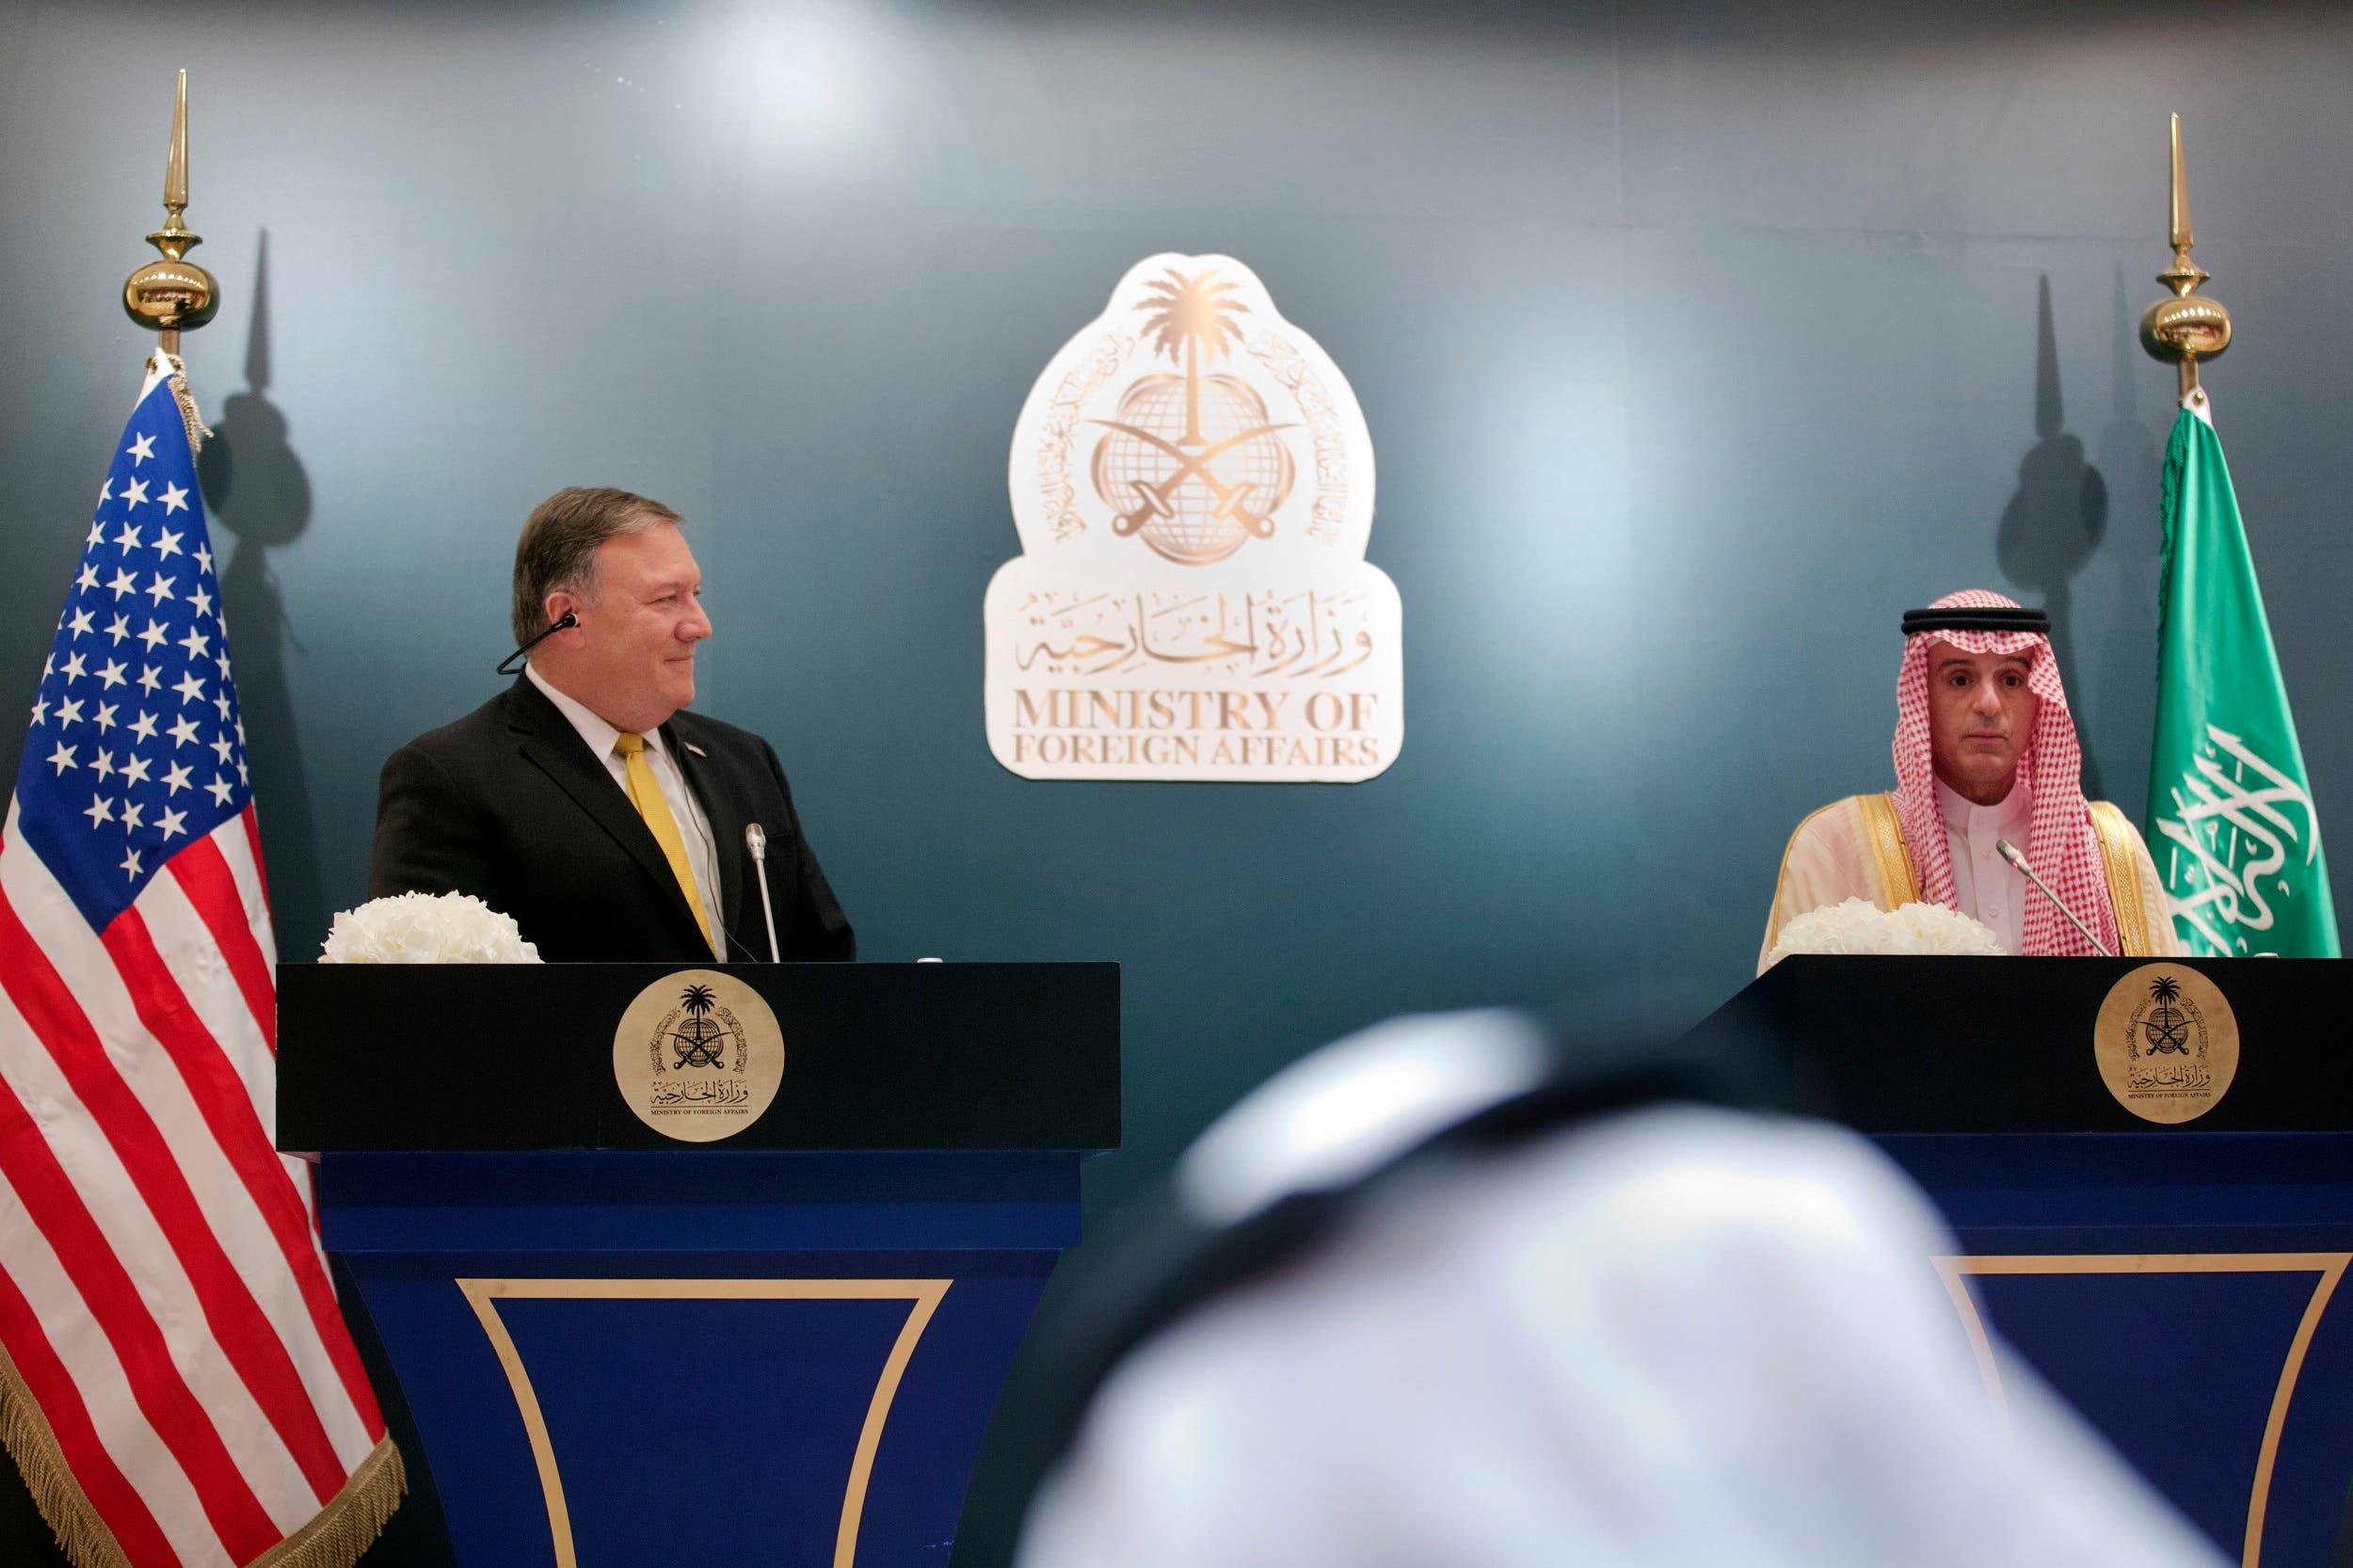 Mike Pompeo and Saudi Arabia's Foreign Minister Adel al-Jubeir during a press conference in Riyadh on April 29, 2018. (AP)